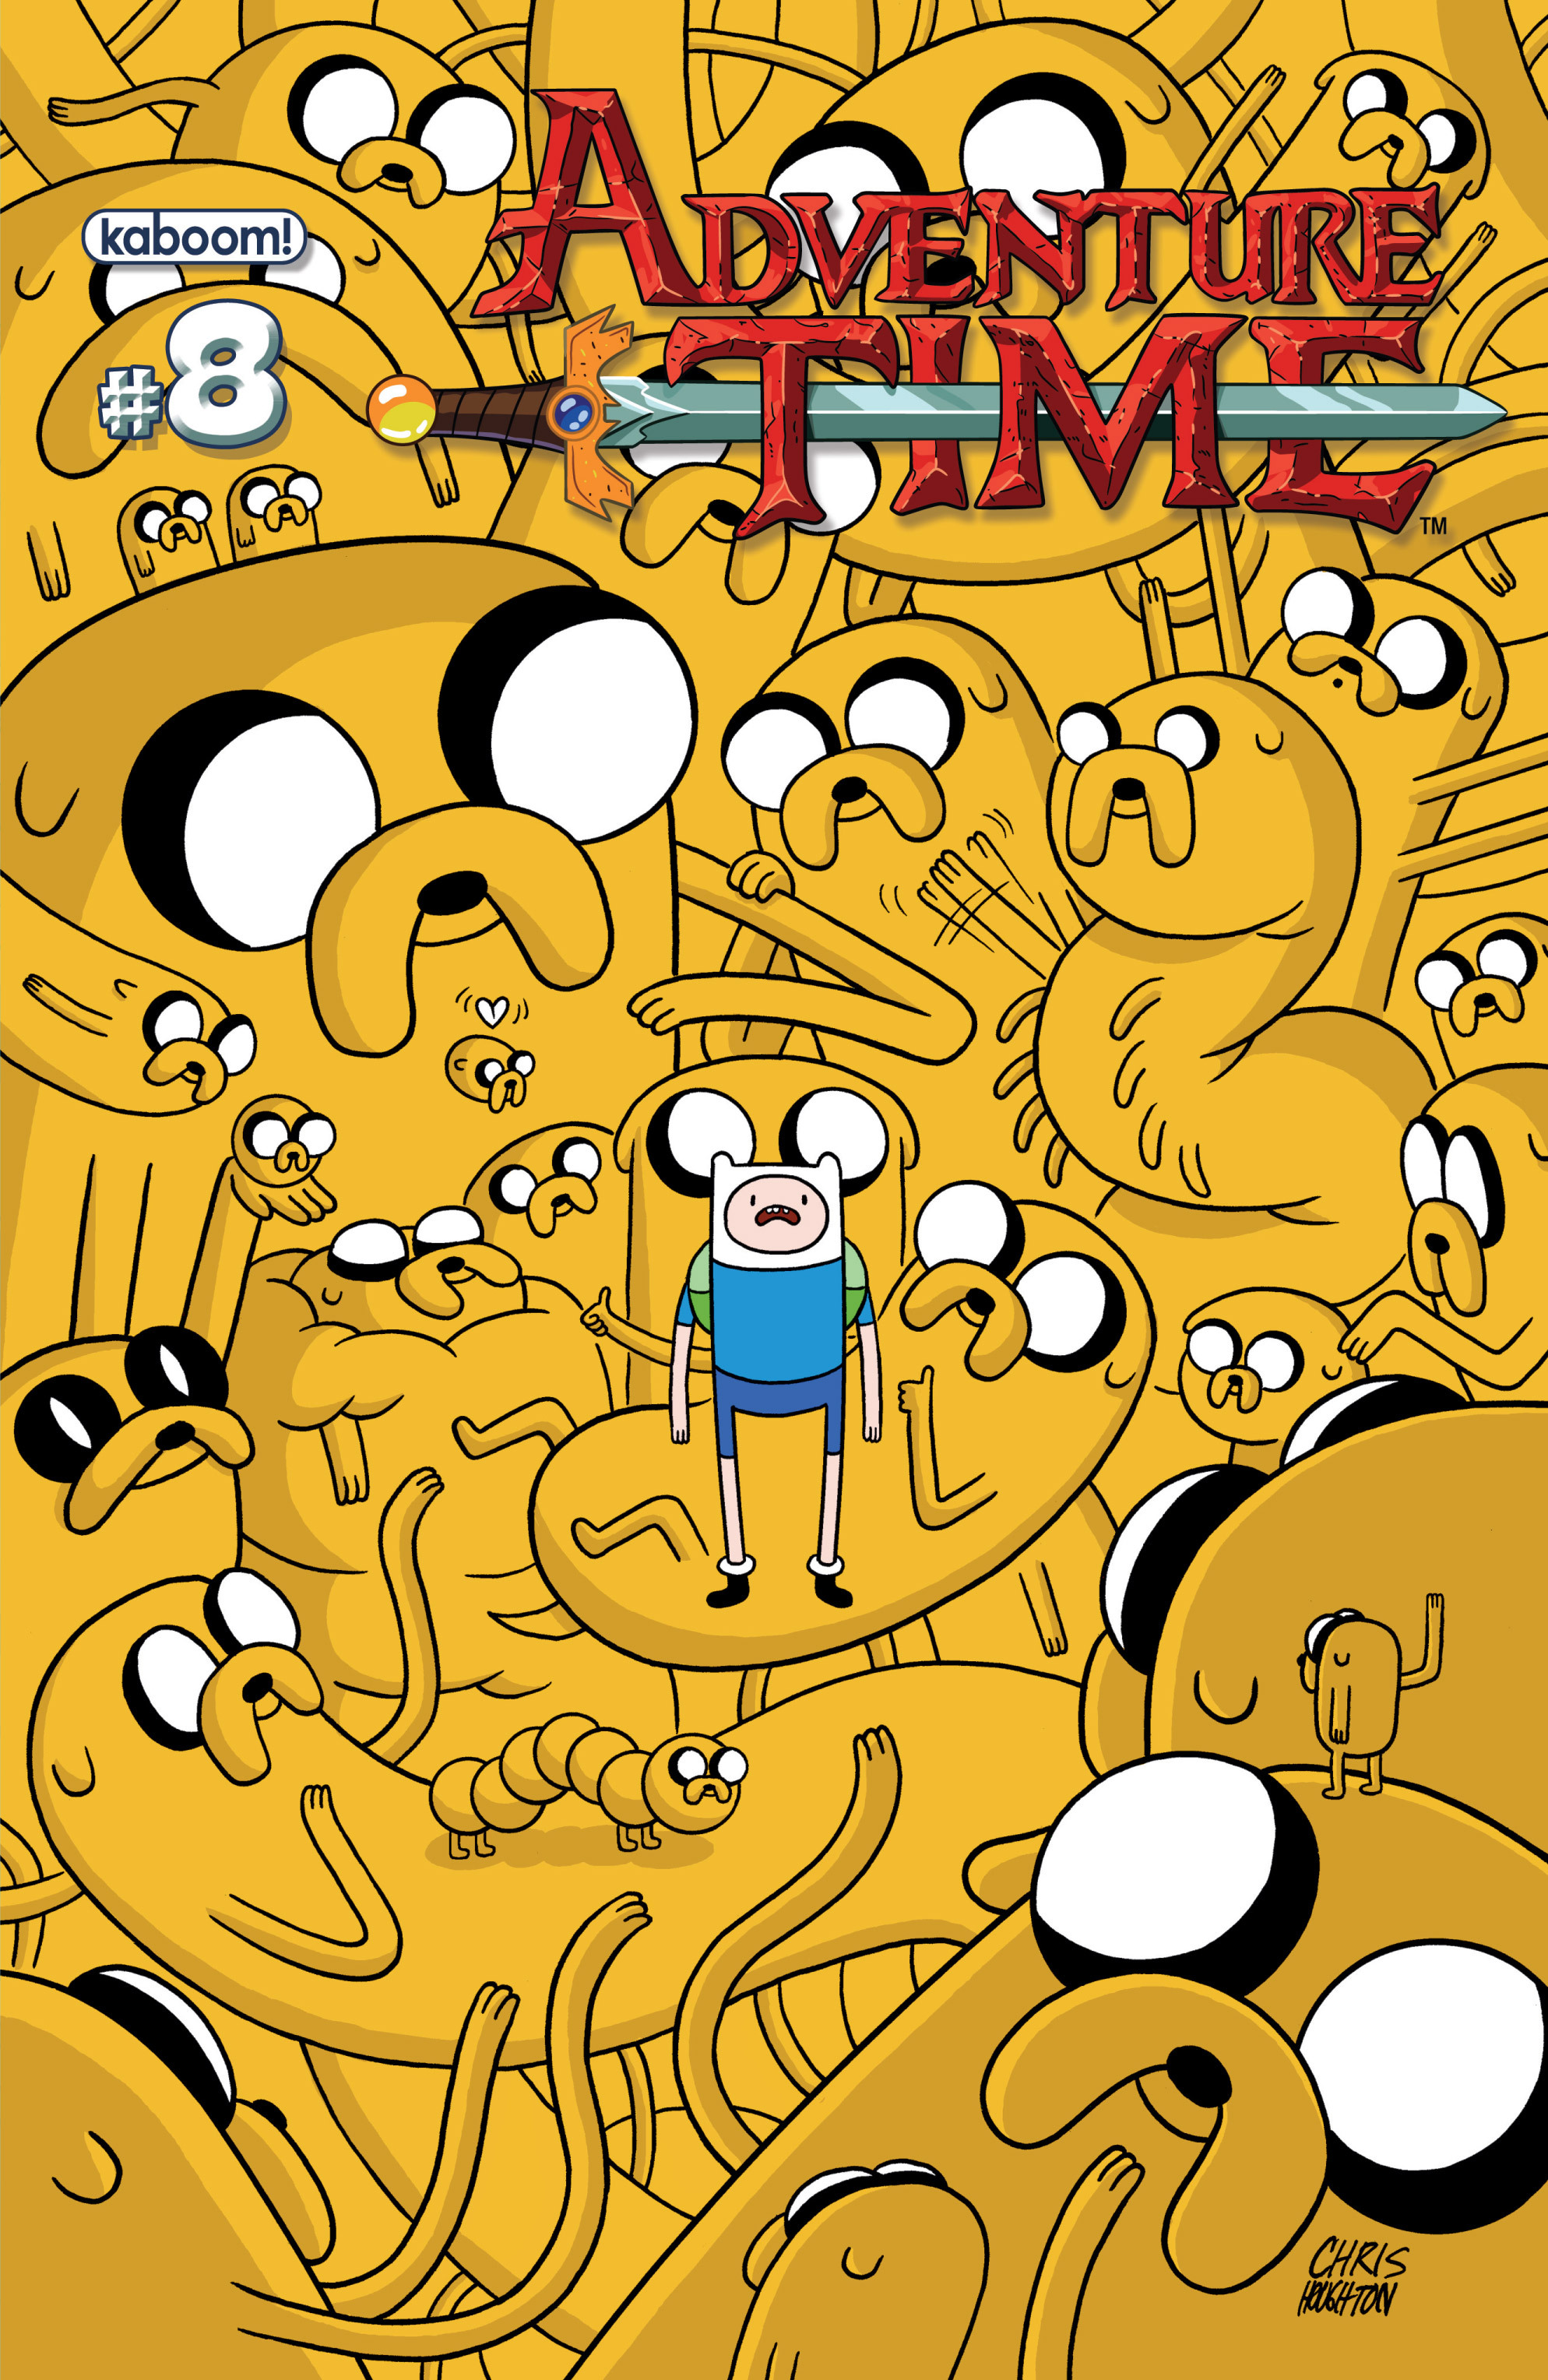 Read online Adventure Time comic -  Issue #8 - 1